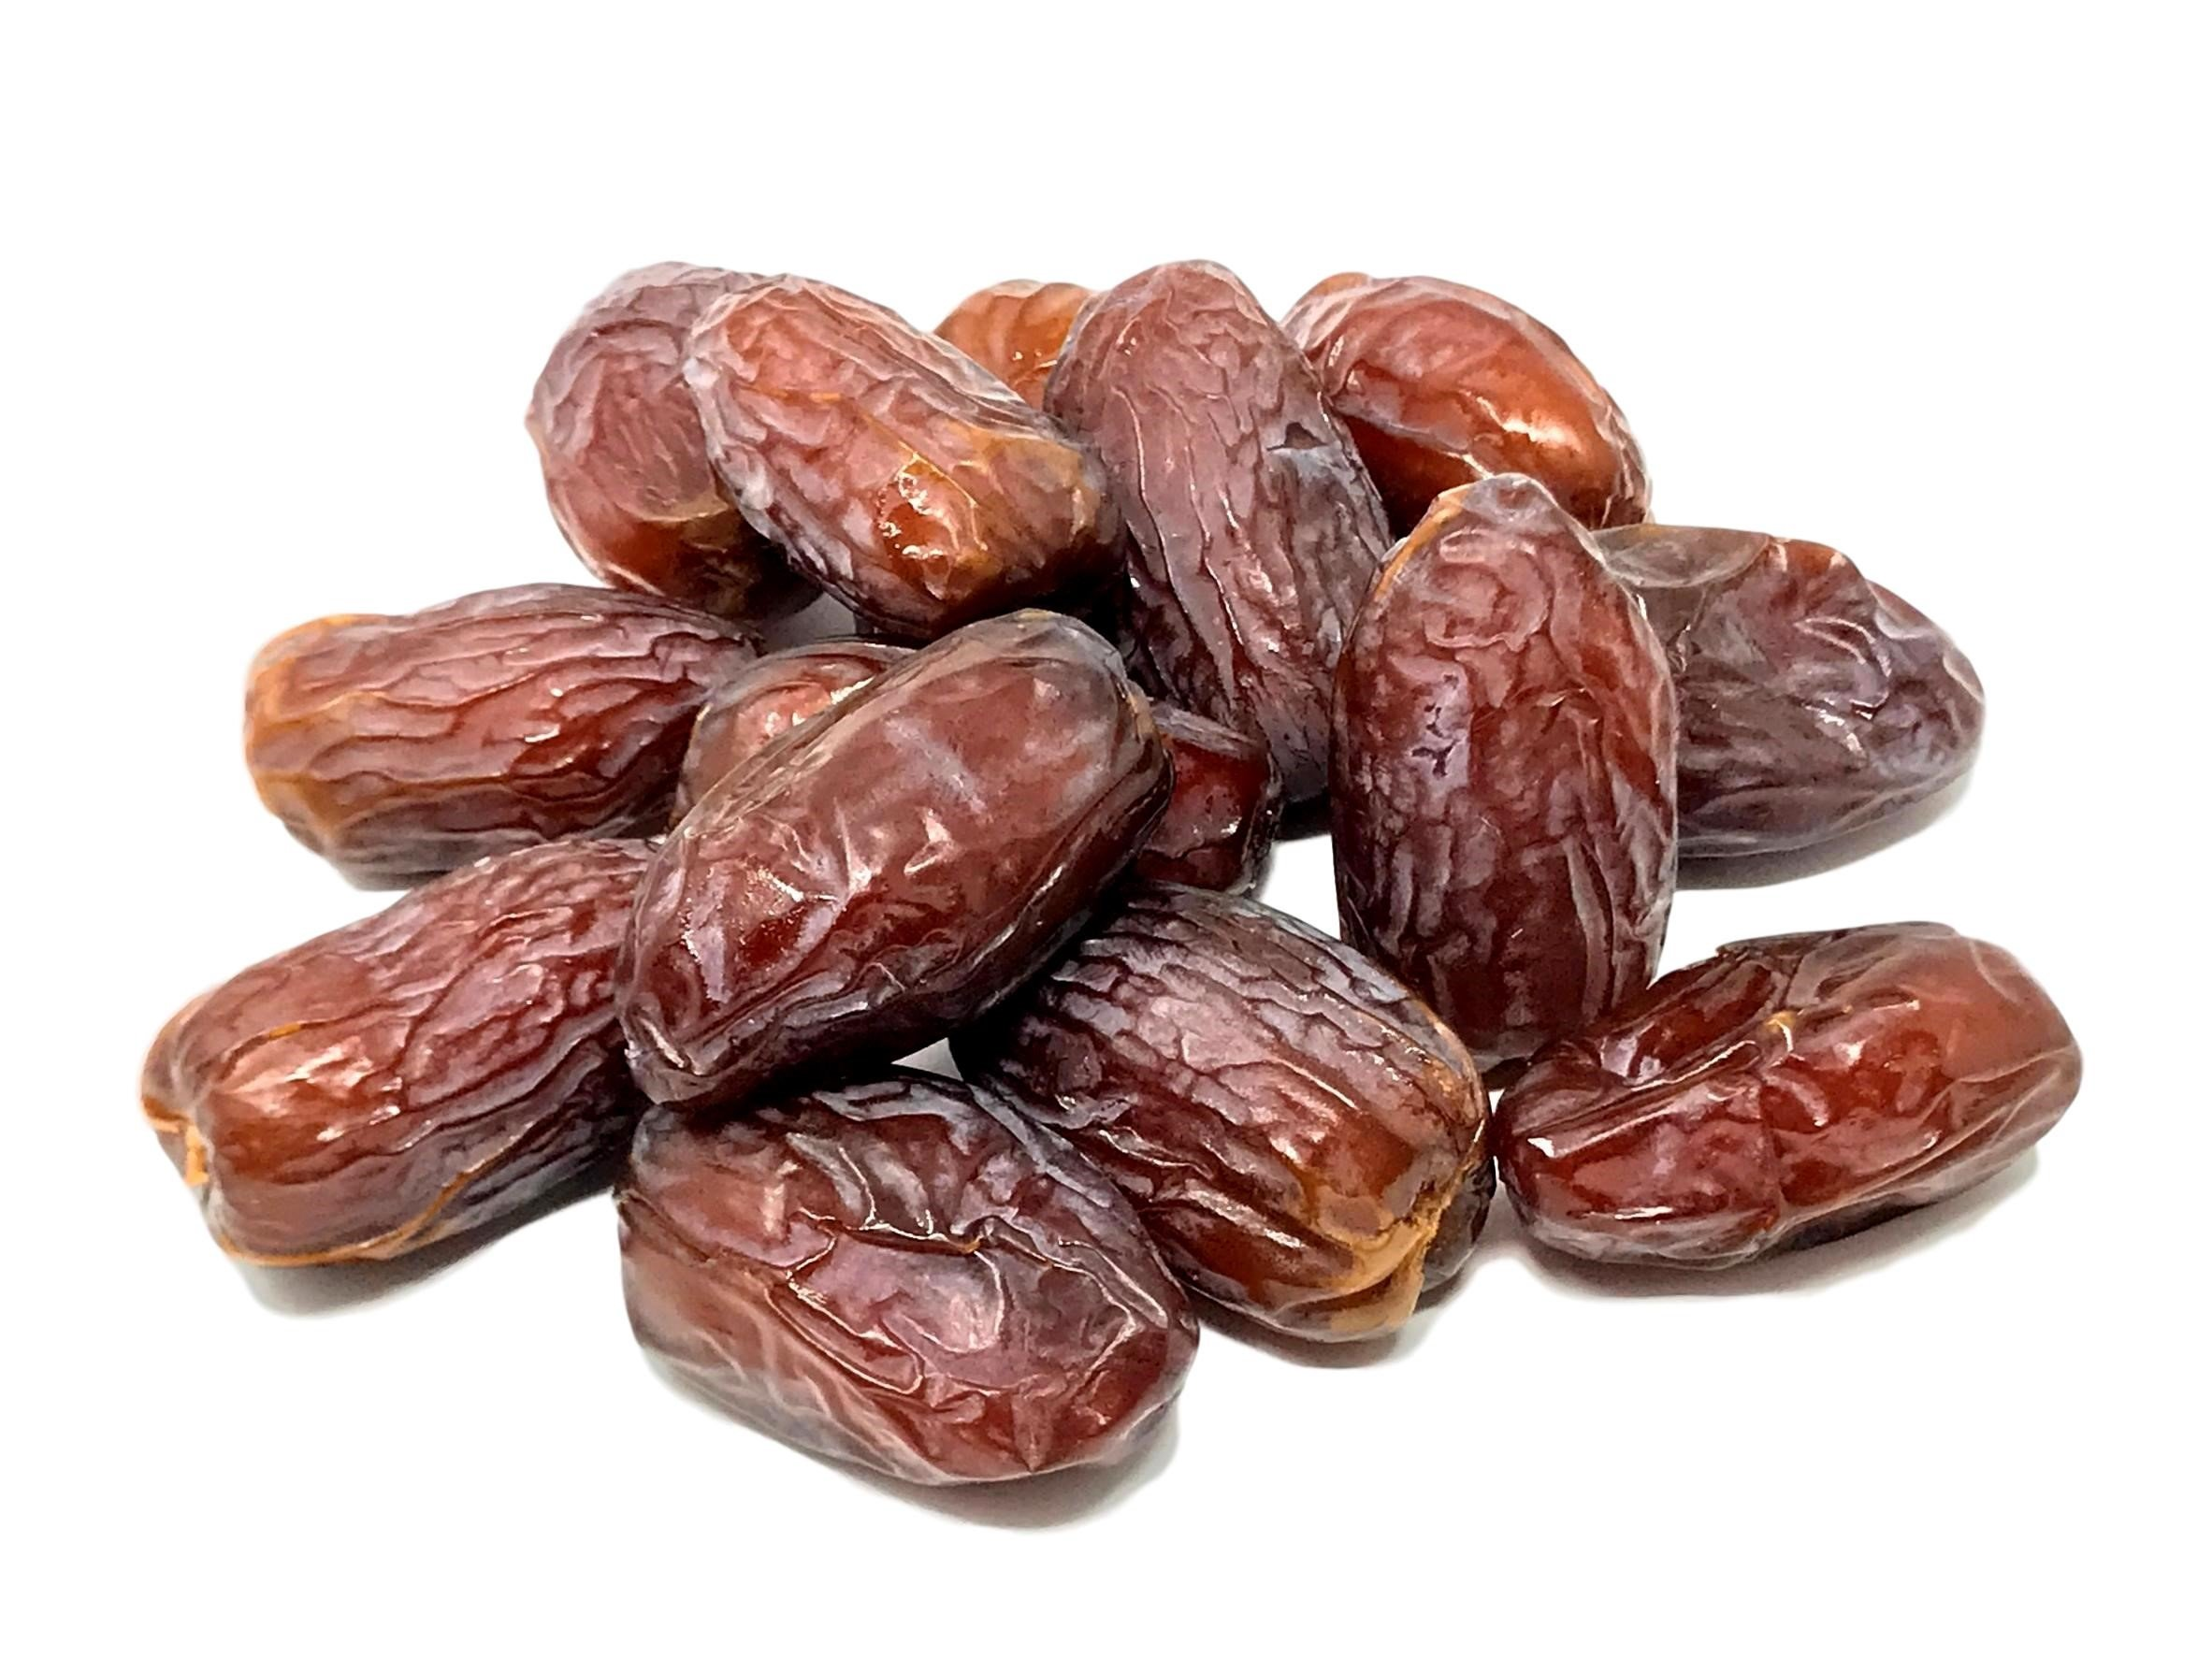 NUTS U.S. - Organic California Medjool Dates (2 LBS)